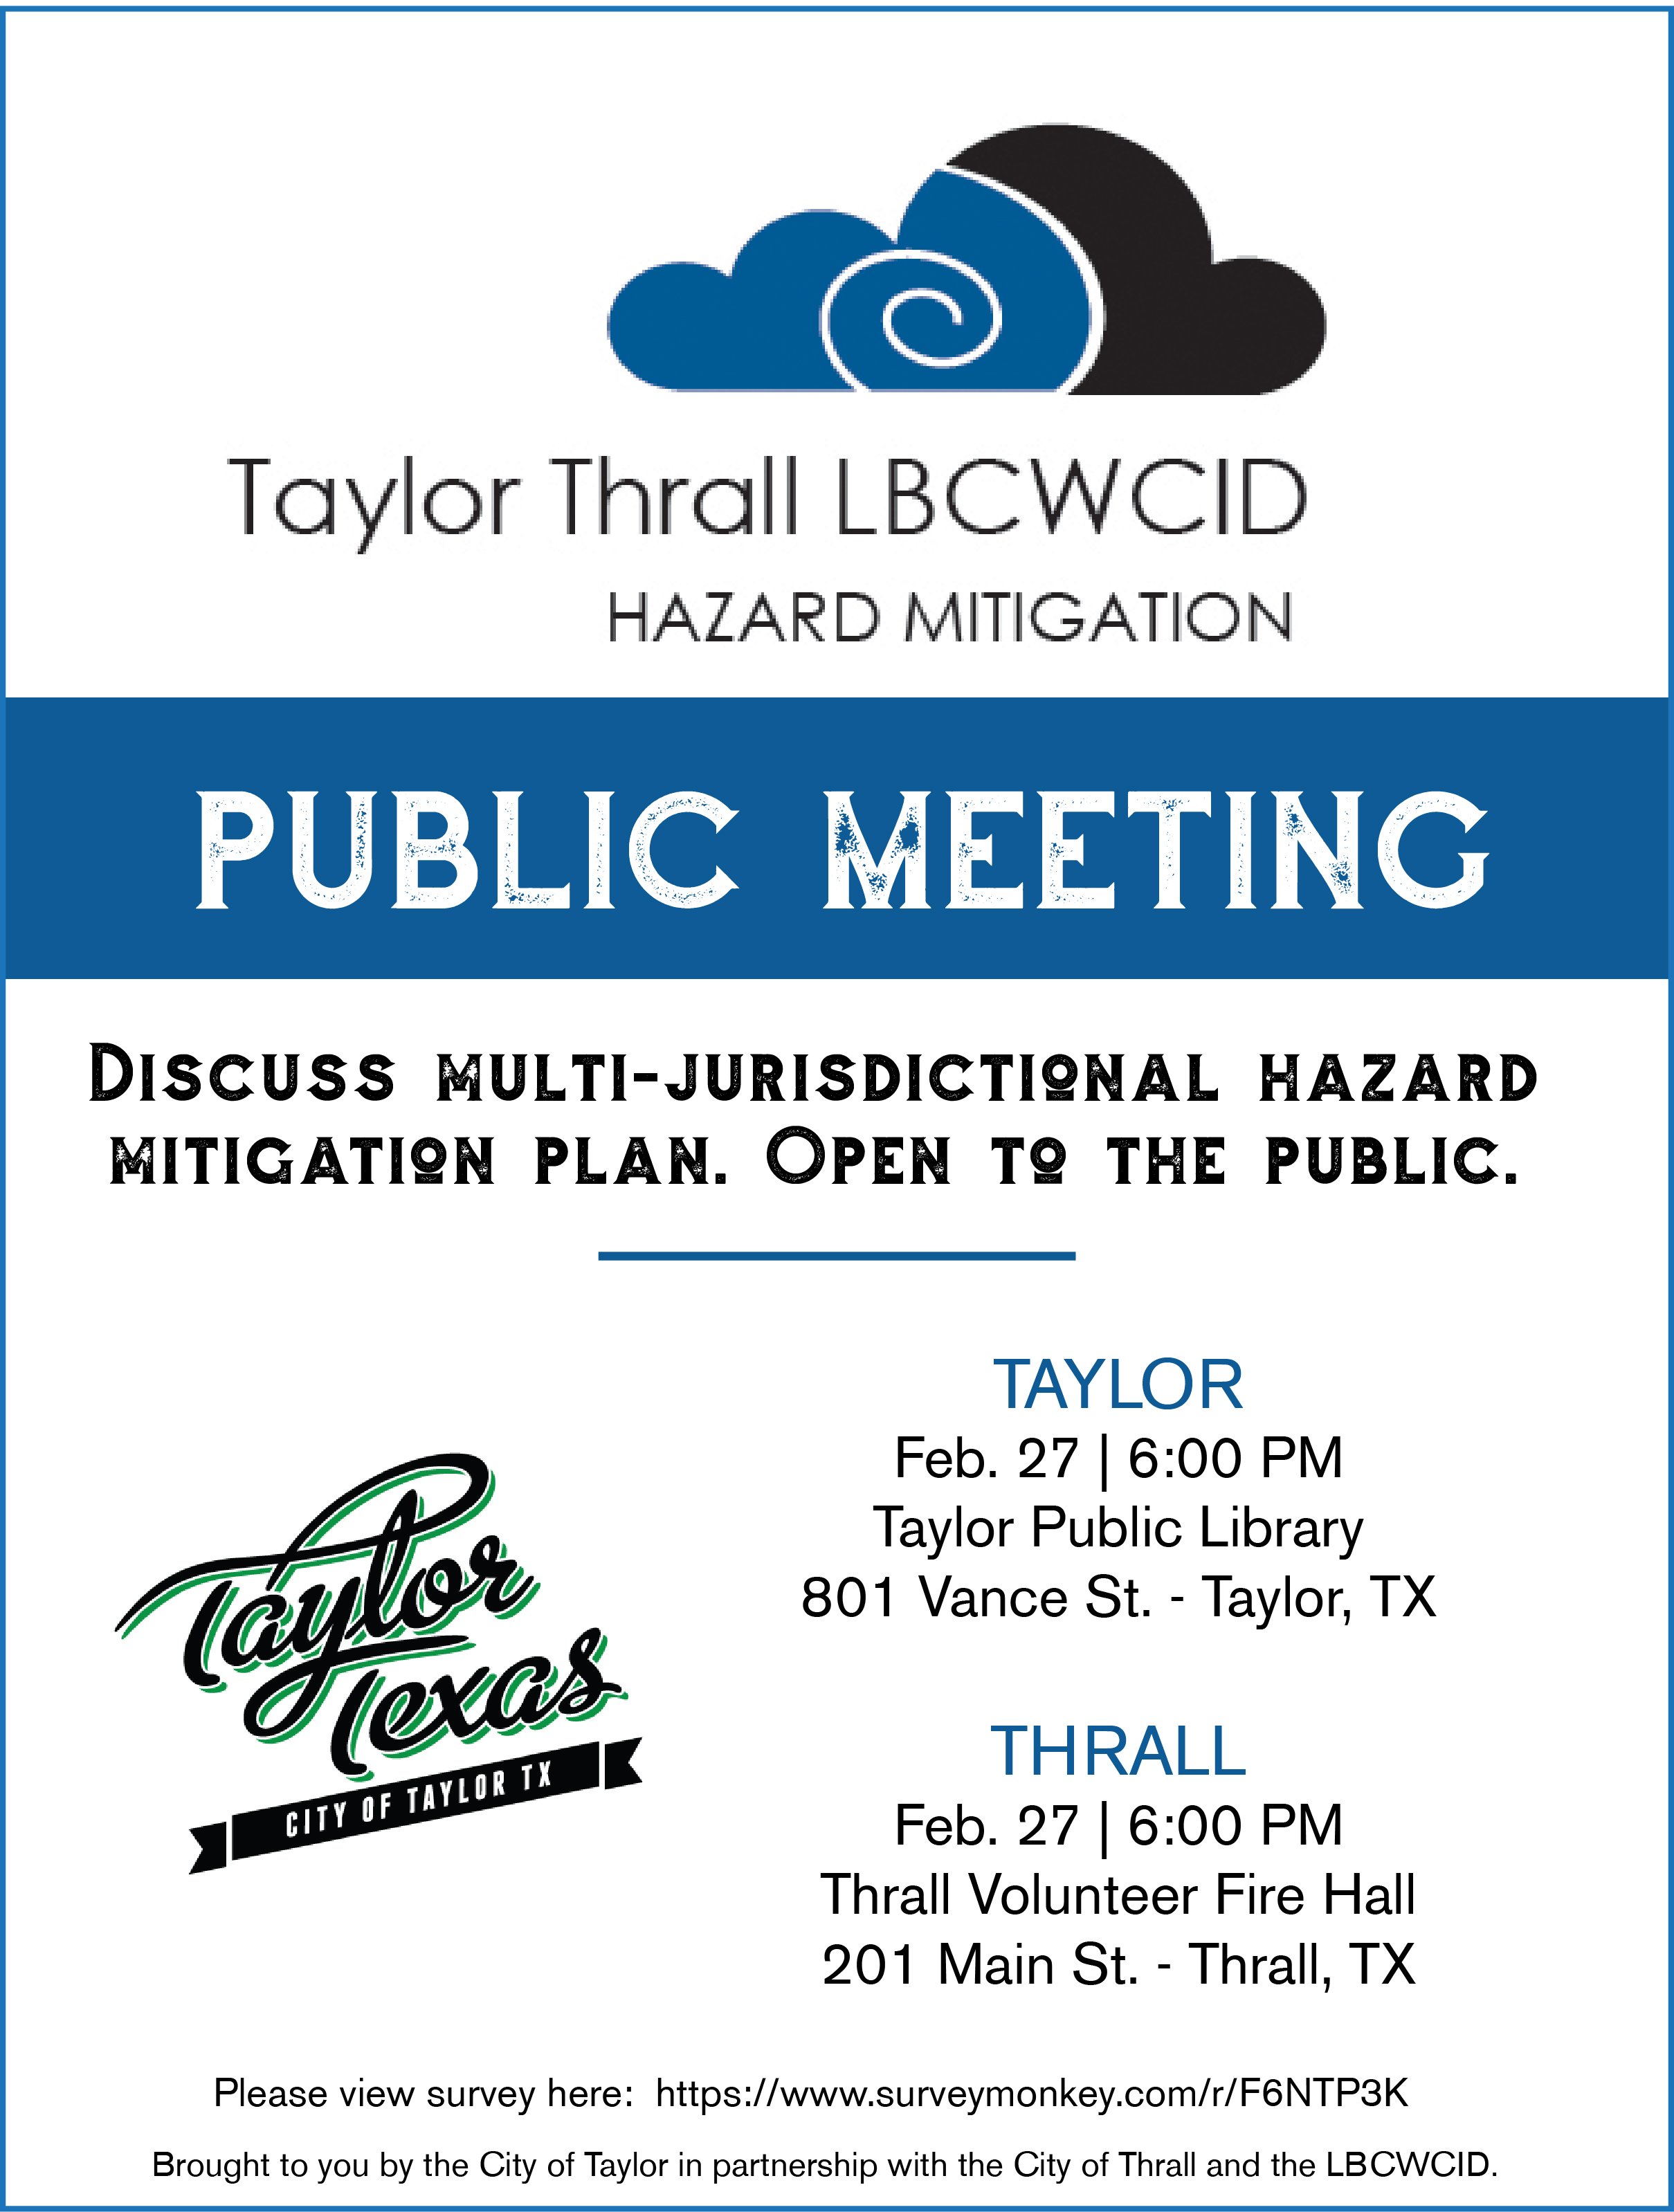 hazard mitigation public meeting flyer.jpg